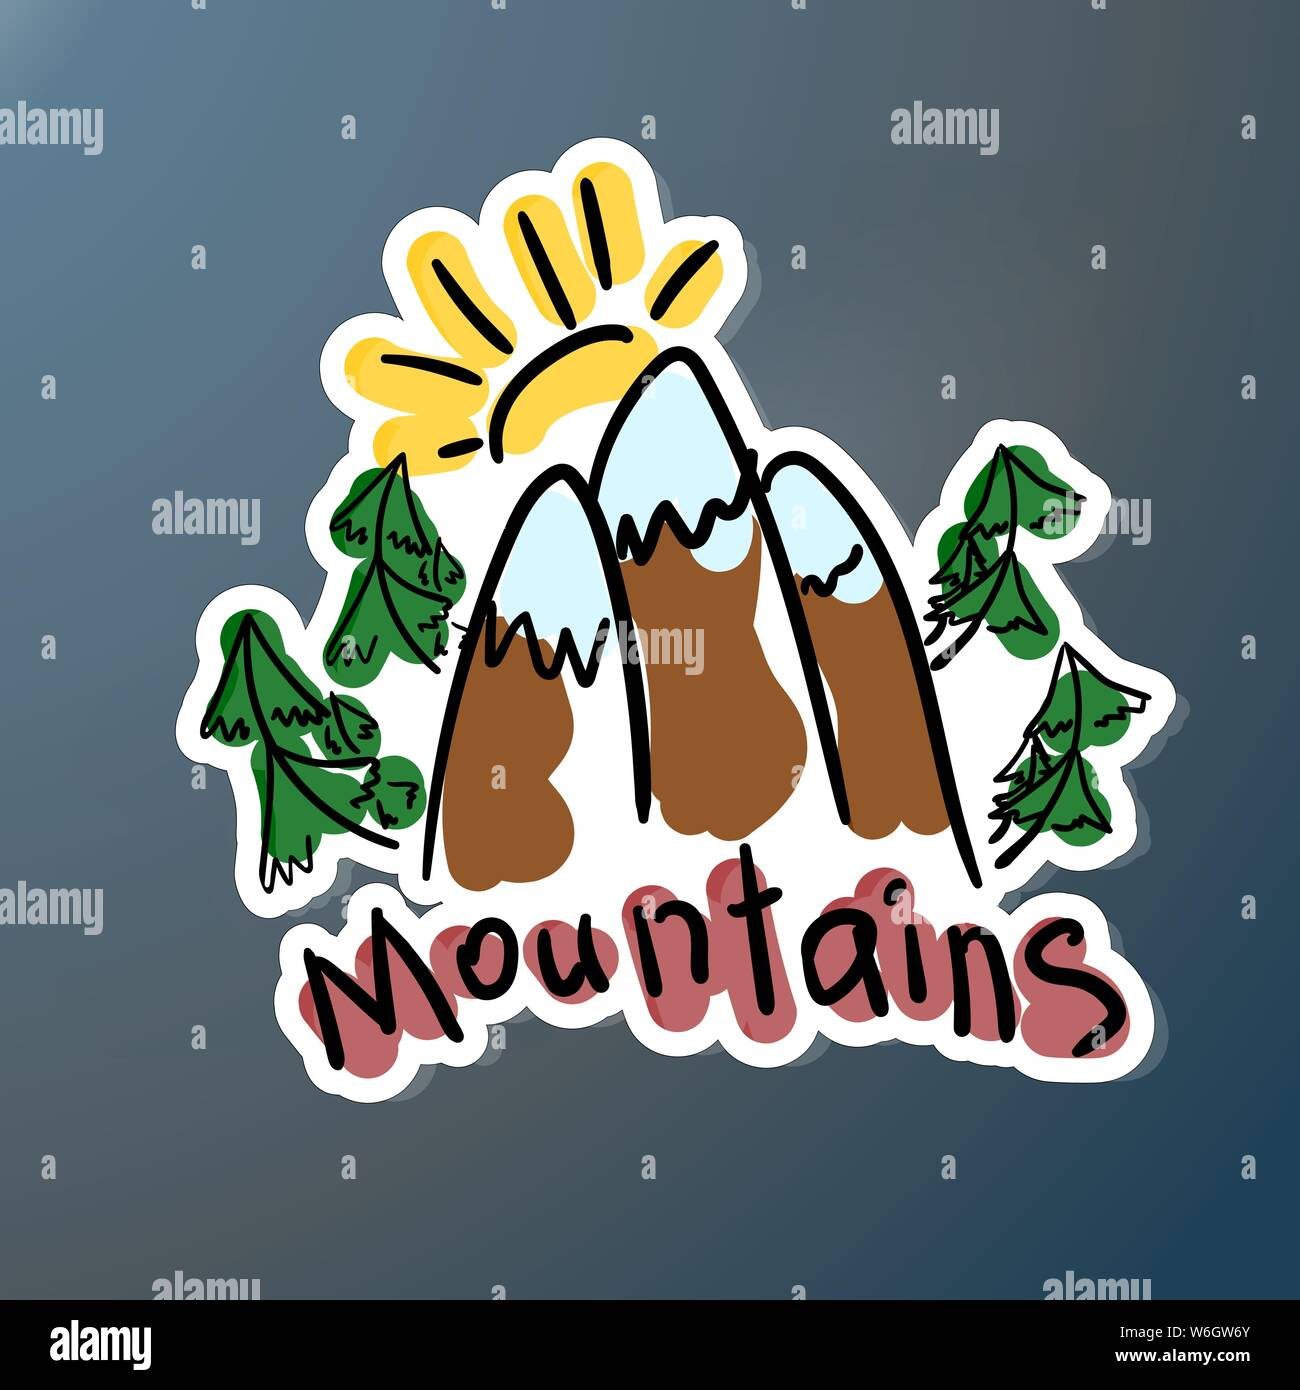 Mountain expedition stiker. Logo in doodle style. Extreme exploration car decal. Adventure hiking creative emblem outdoors. Concept Hand calligraphy s Stock Vector